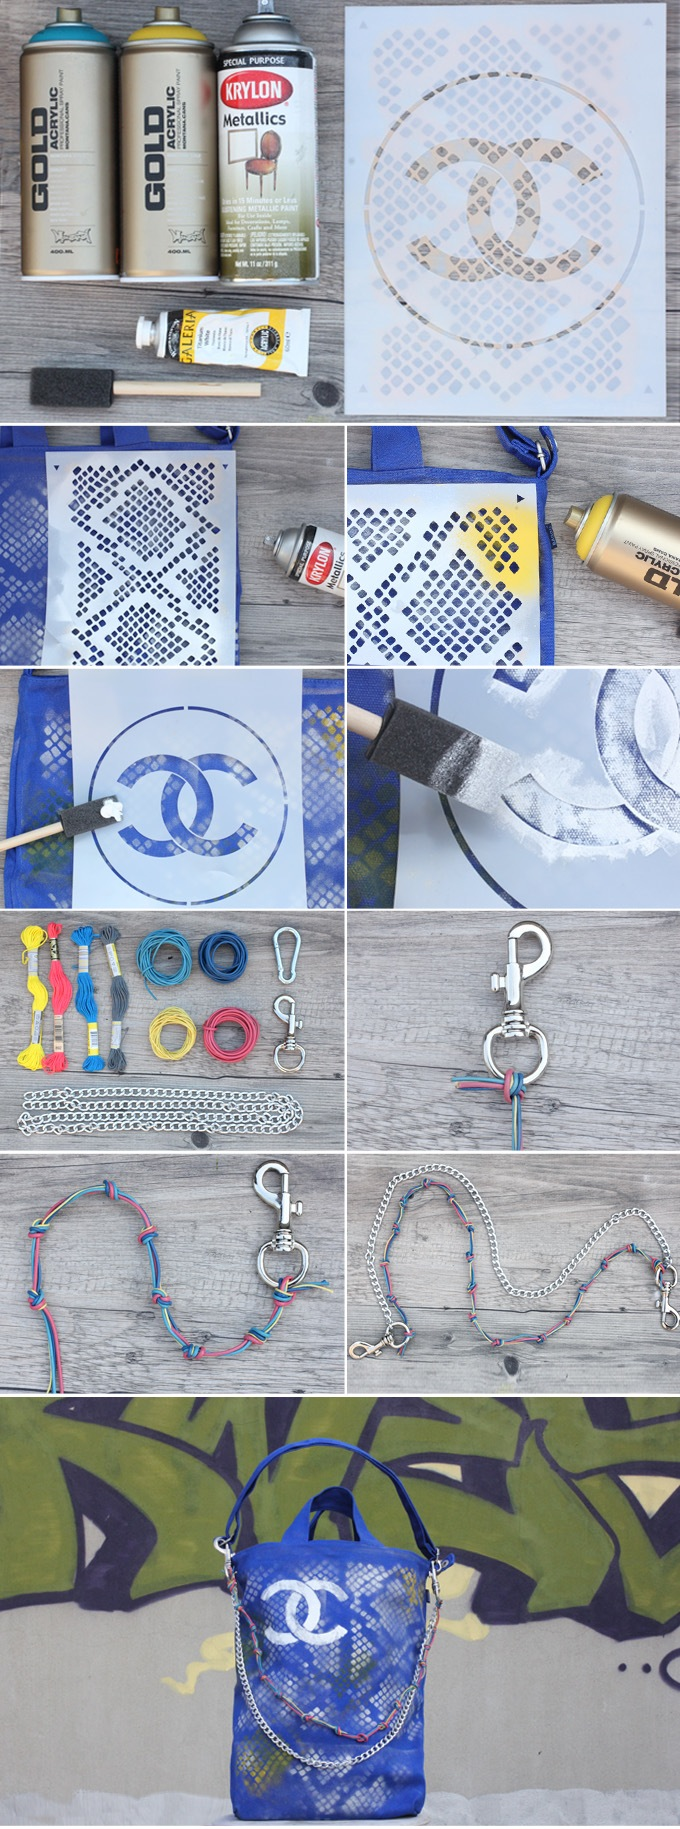 ispydiy_chanel_graffiti_steps